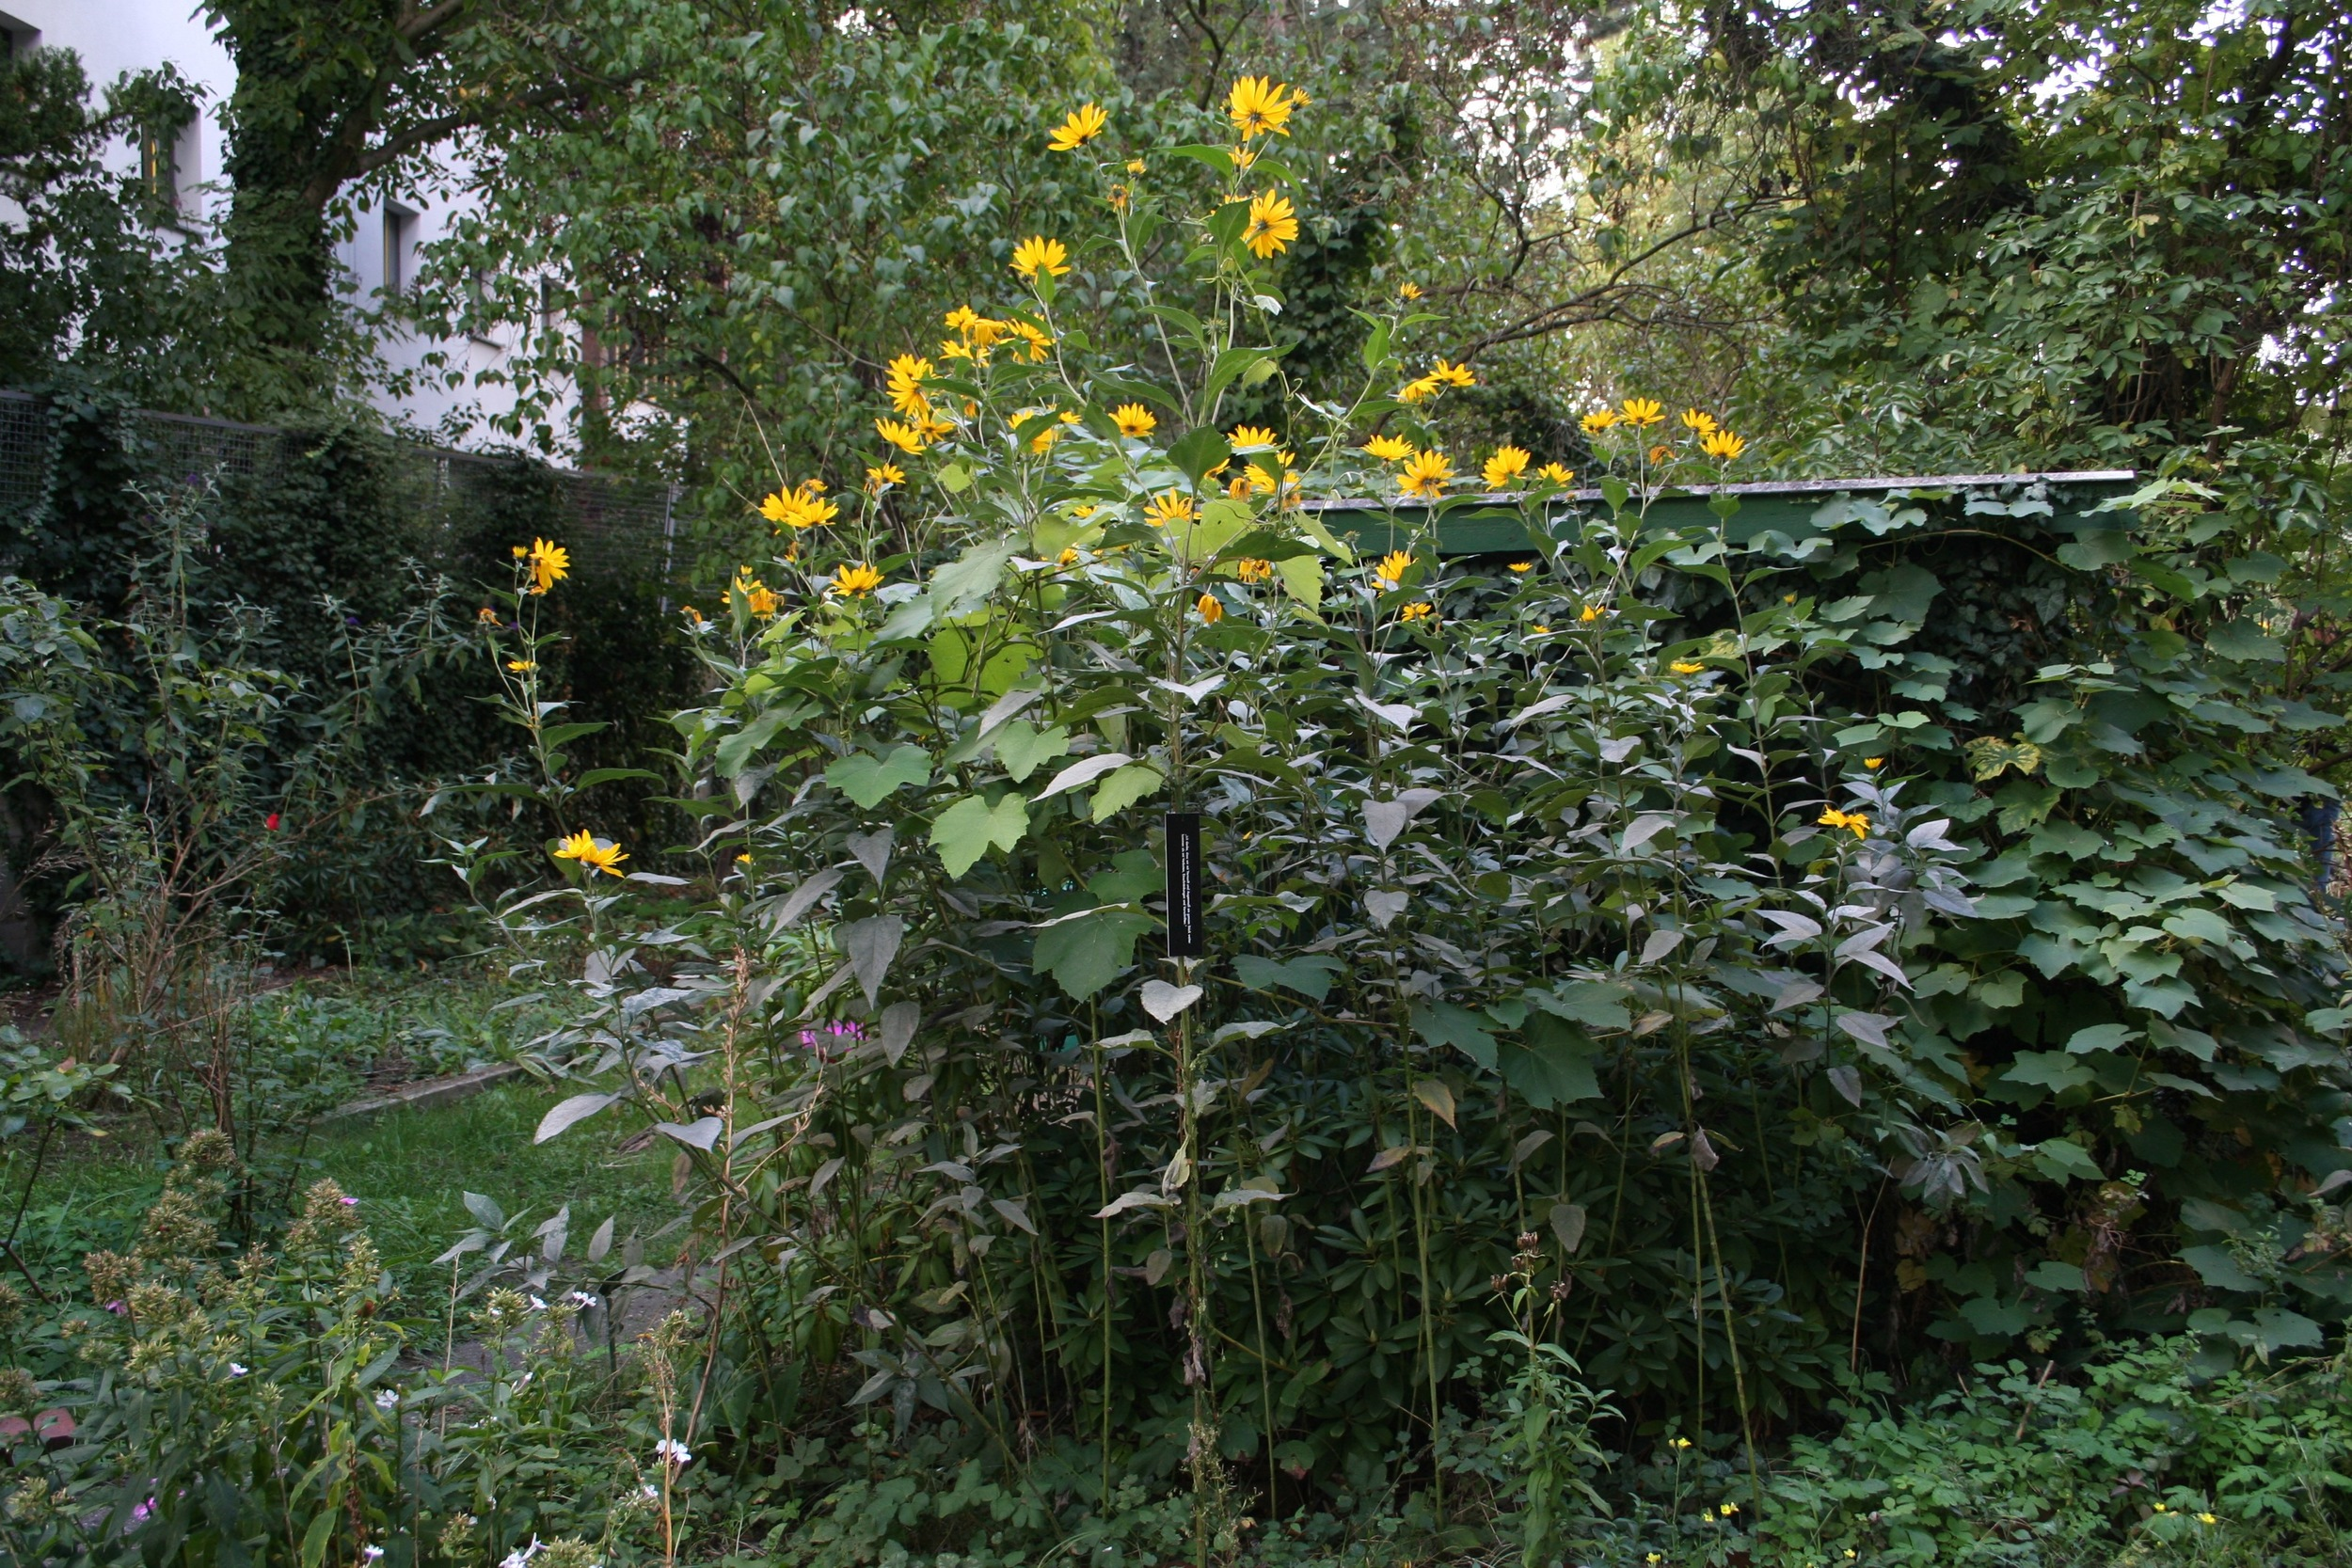 Comments on Our Garden, 2015